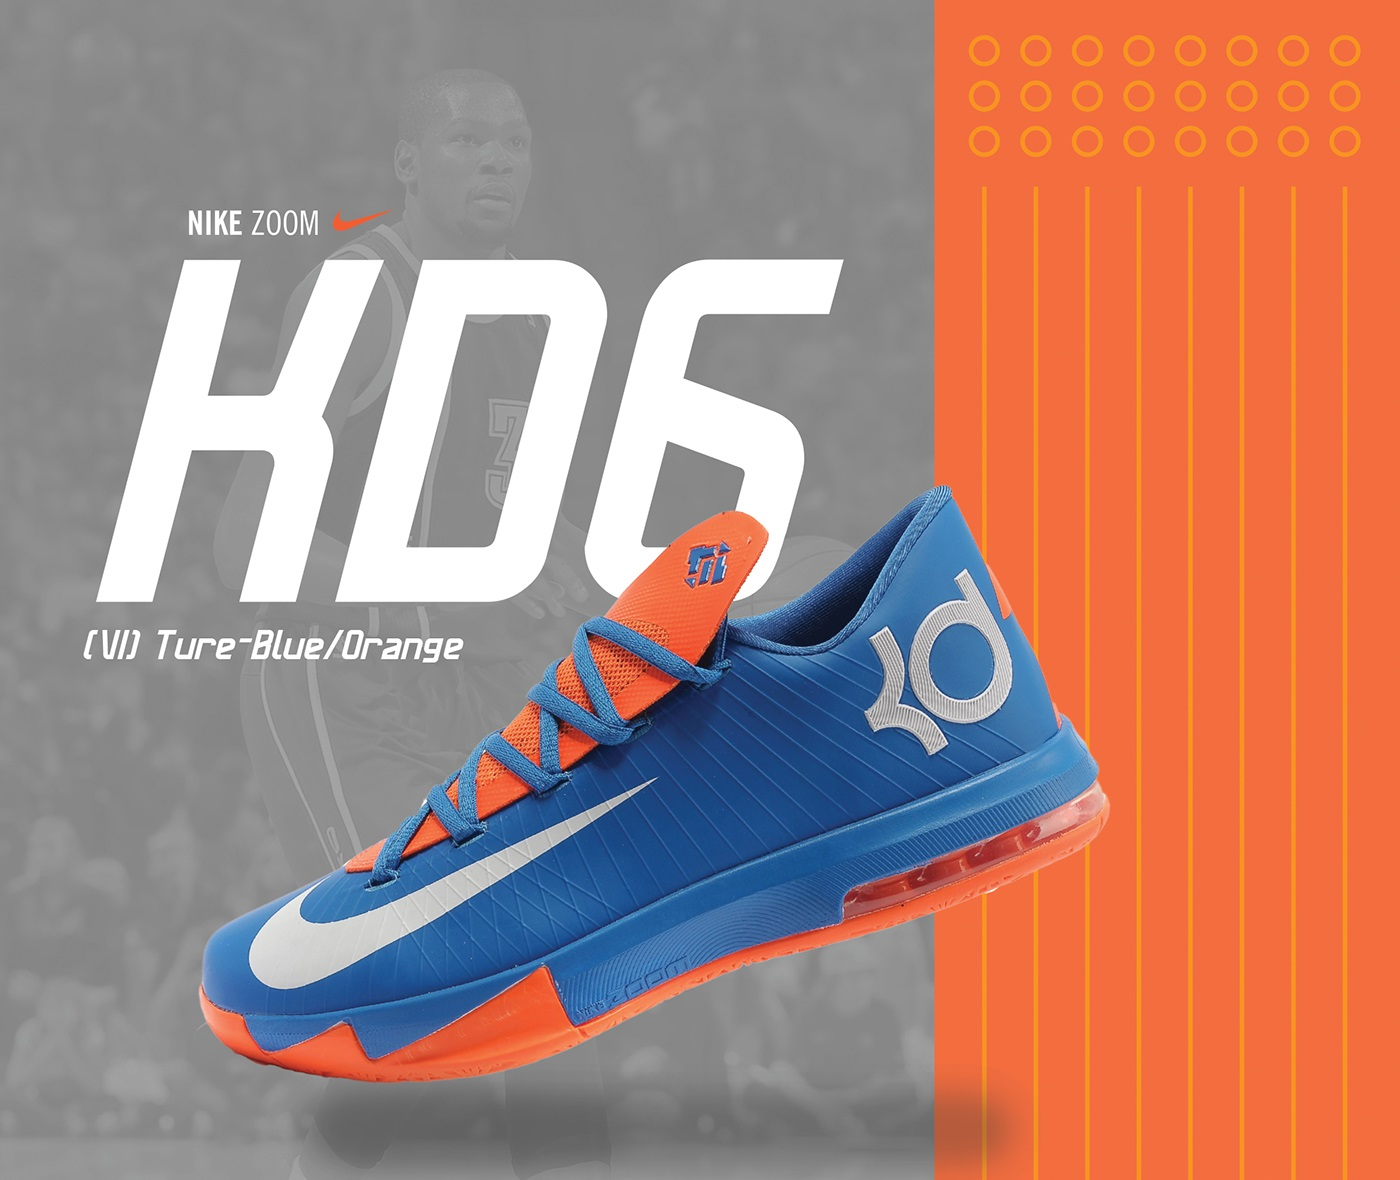 kevin-durant-shoes-nike